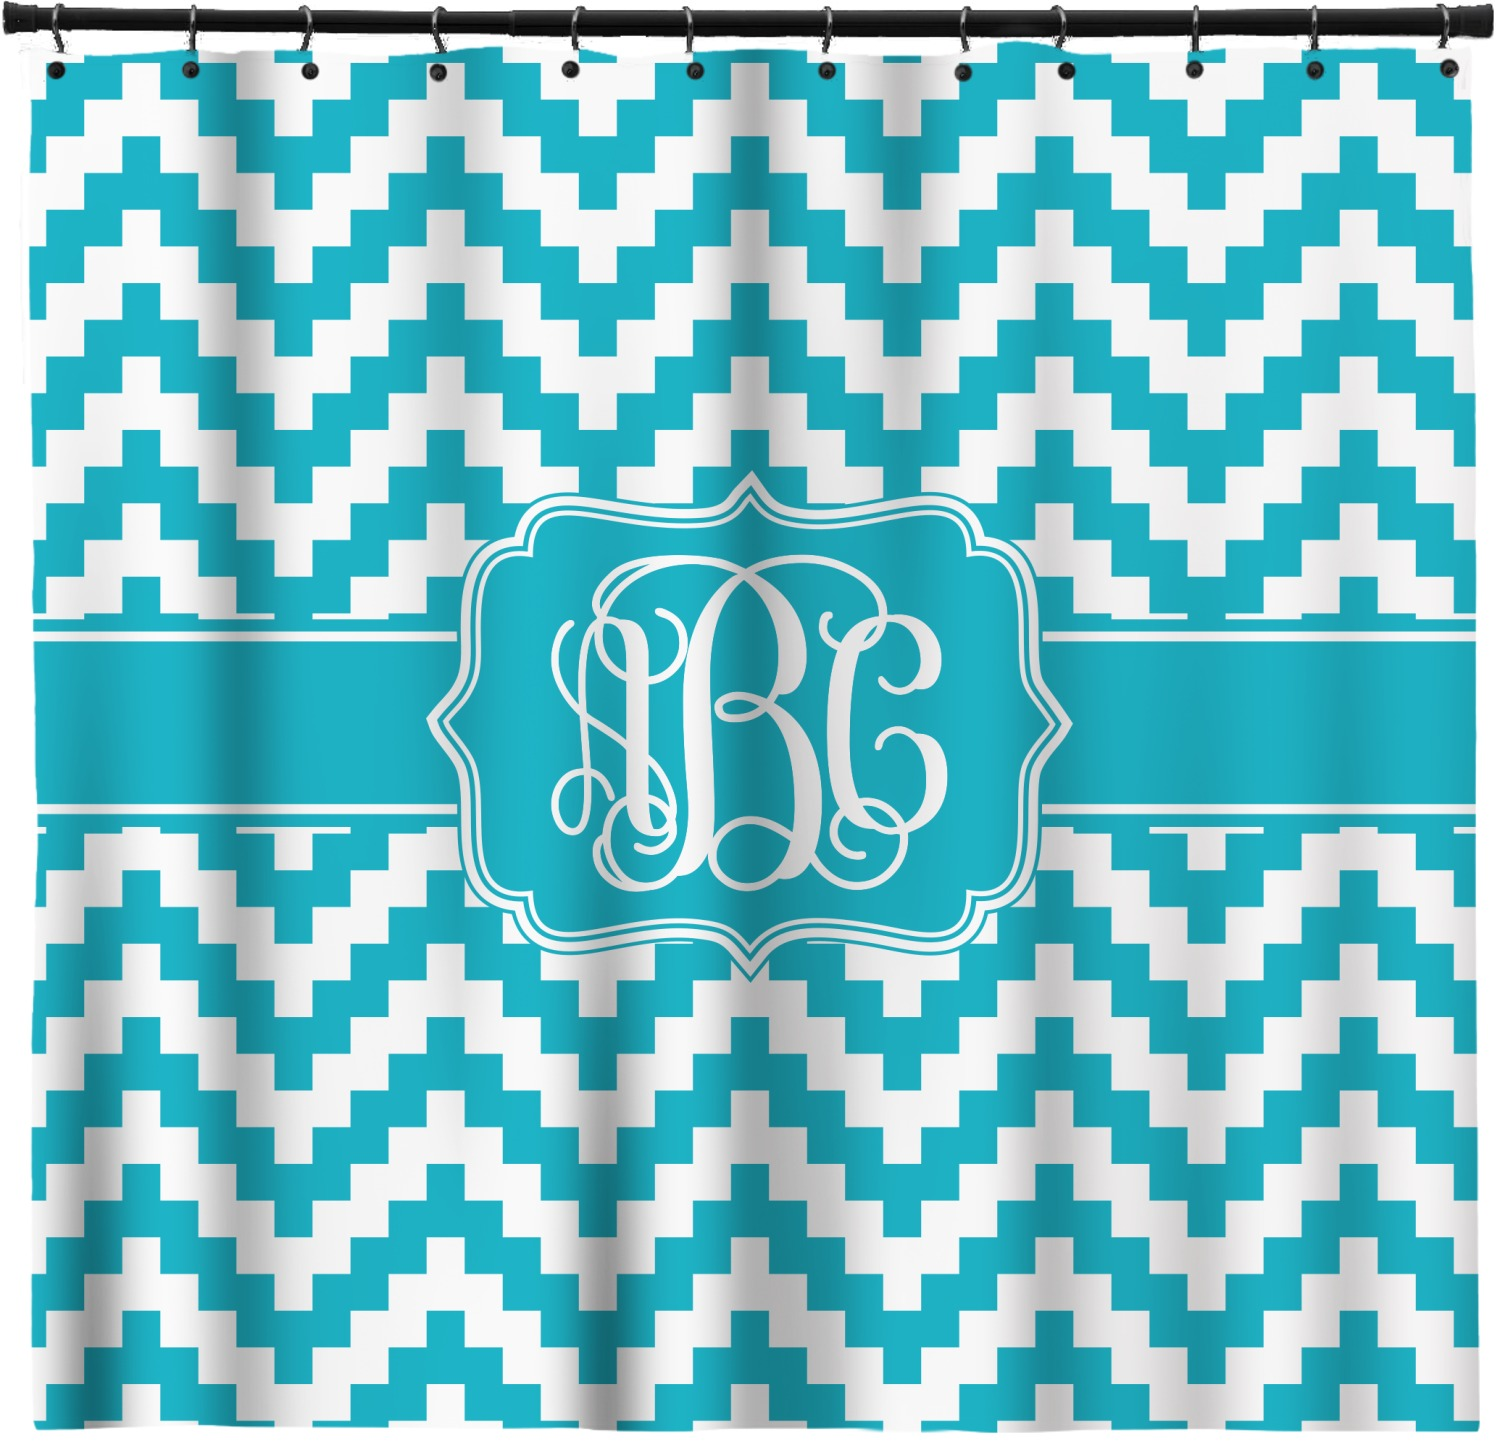 Pixelated Chevron Shower Curtain Personalized